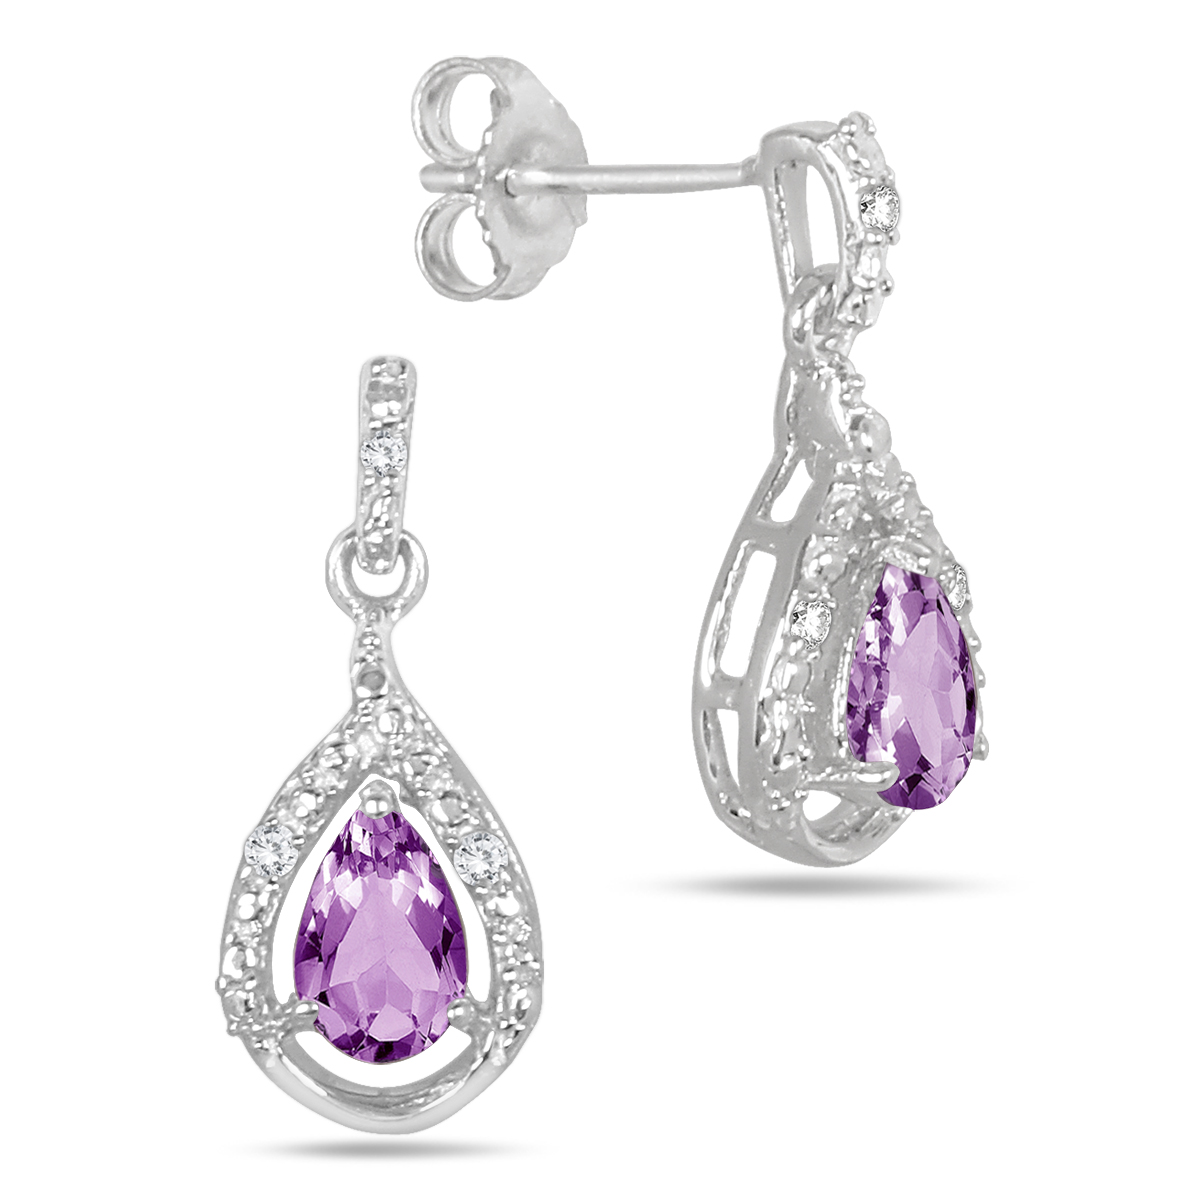 0.70 Carat T.W Amethyst and Diamond Earrings in .925 Sterling Silver